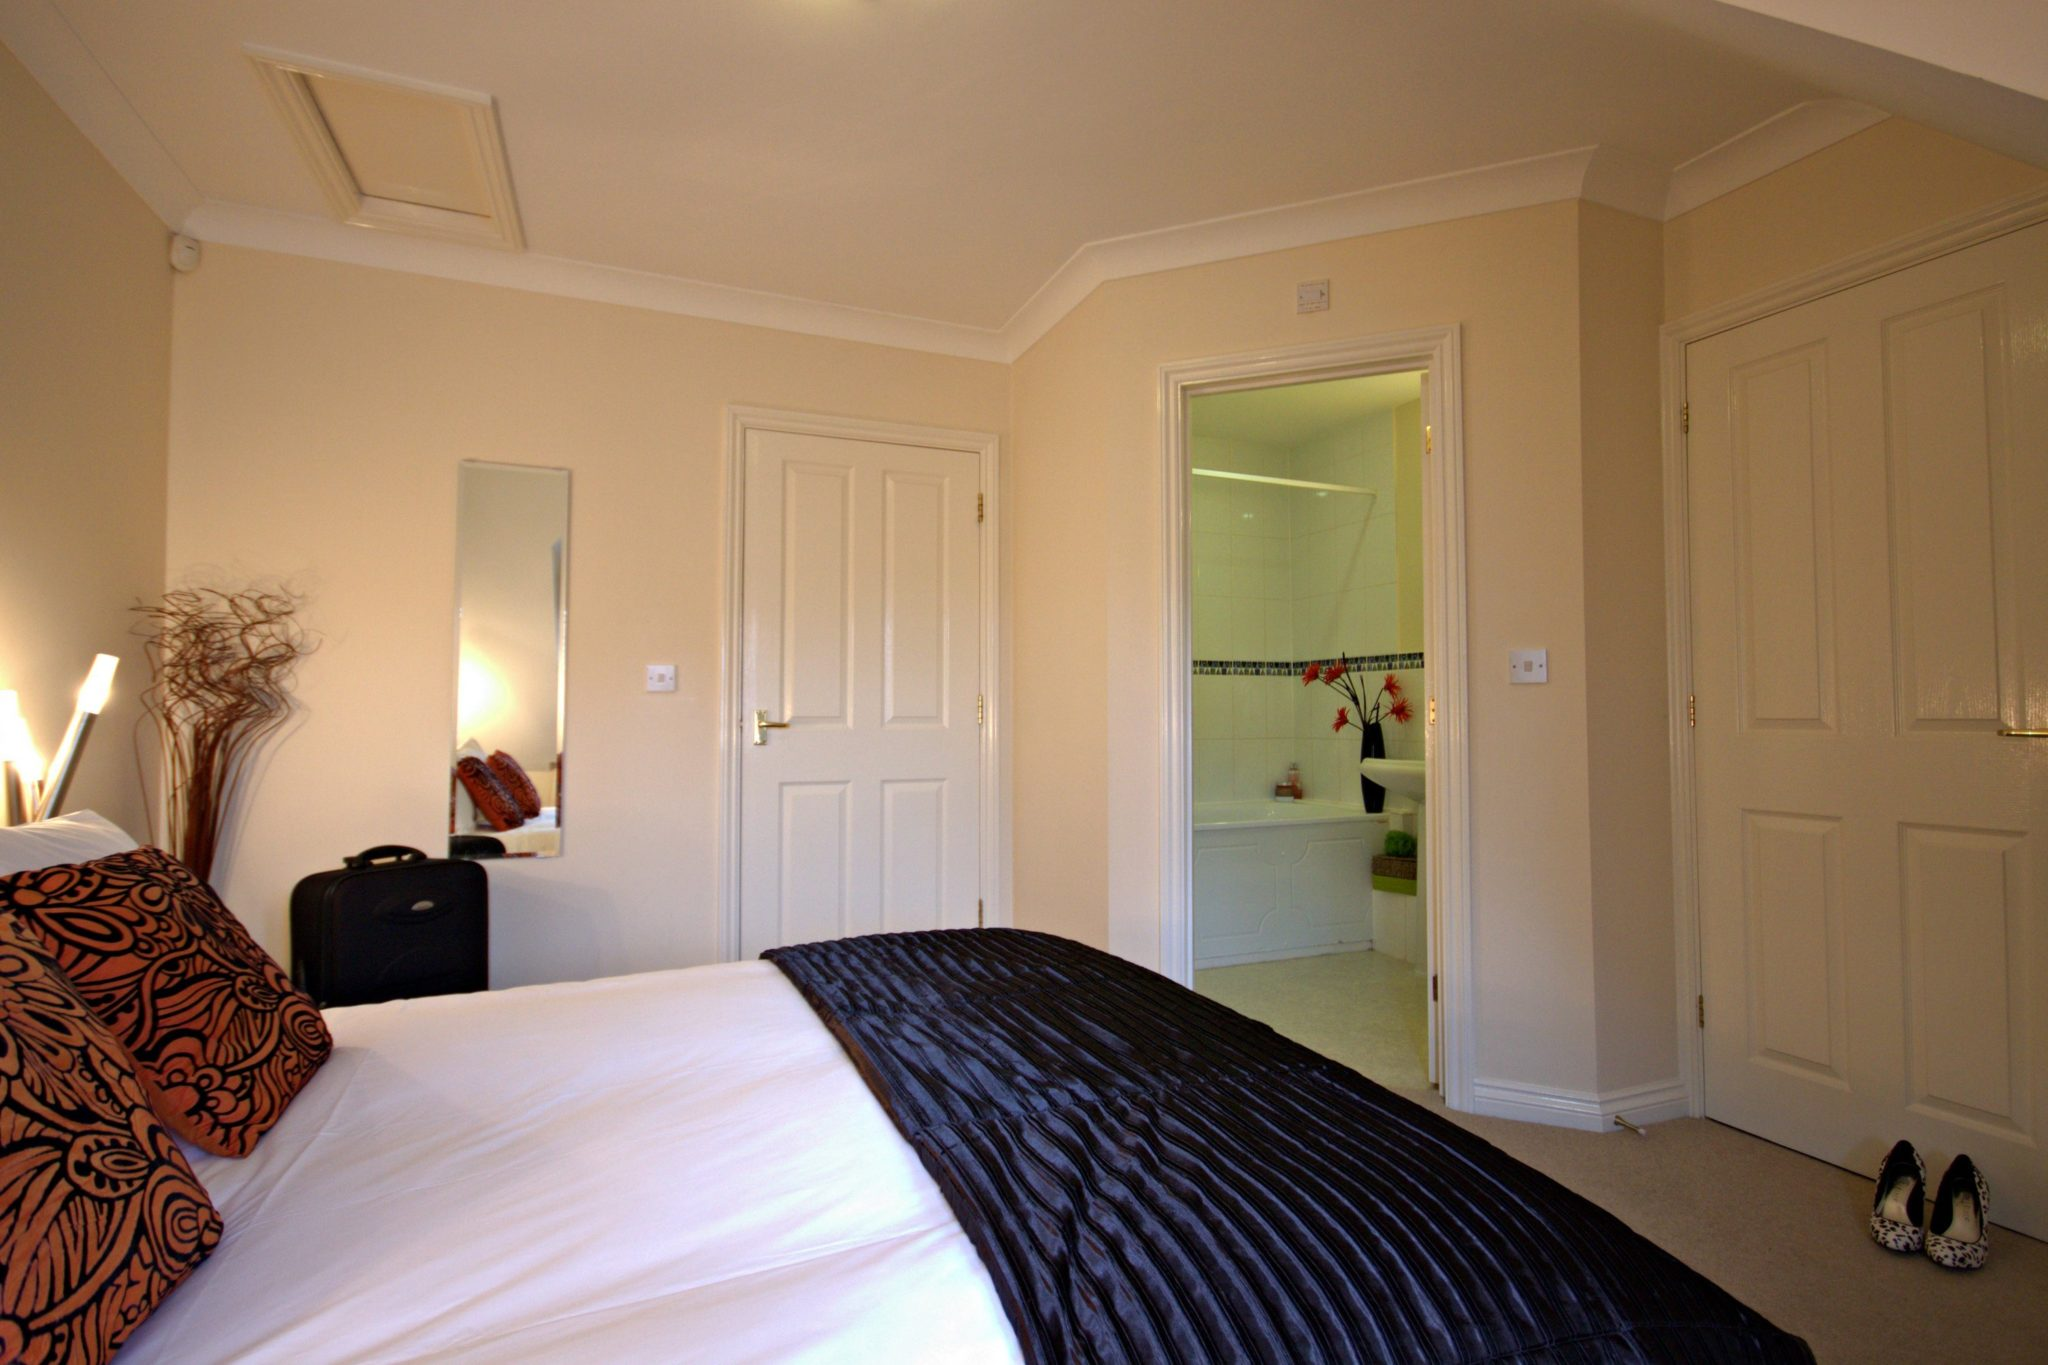 Basingstoke-Serviced-Accommodation-Berkshire-available-NOW!-Book-corporate-Short-Let-Apartments-in-Basingstoke-with-Free-Parking,Sky-TV-&-Wifi-Incl-now!